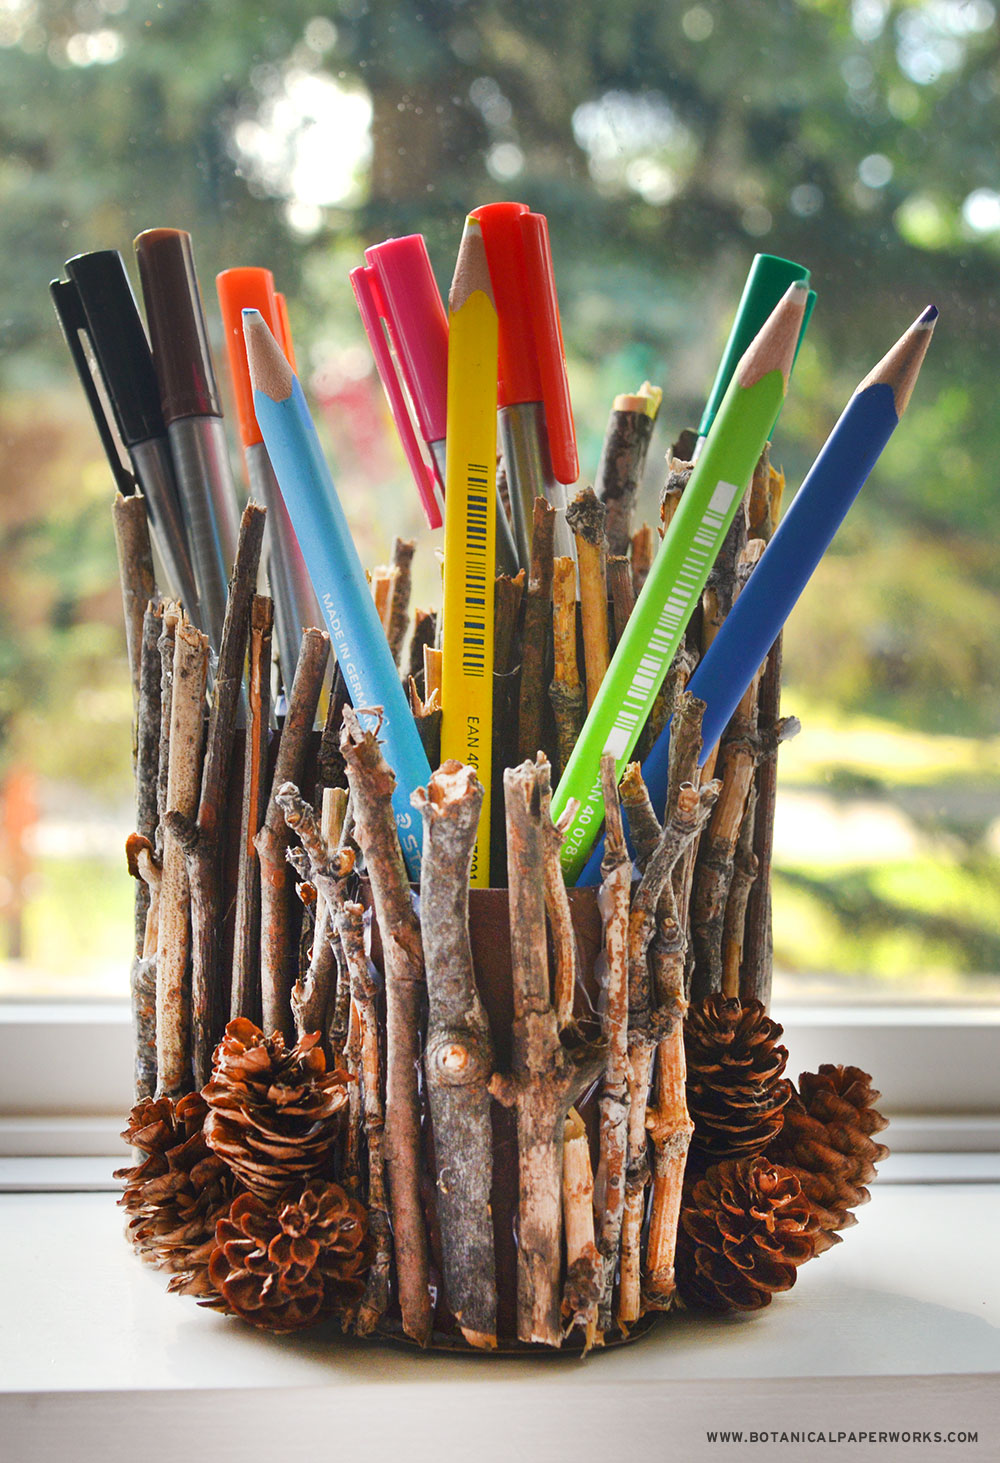 Bring a touch of the outdoors into your workspace with this eco-friendly craft project that uses toilet paper rolls and twigs.